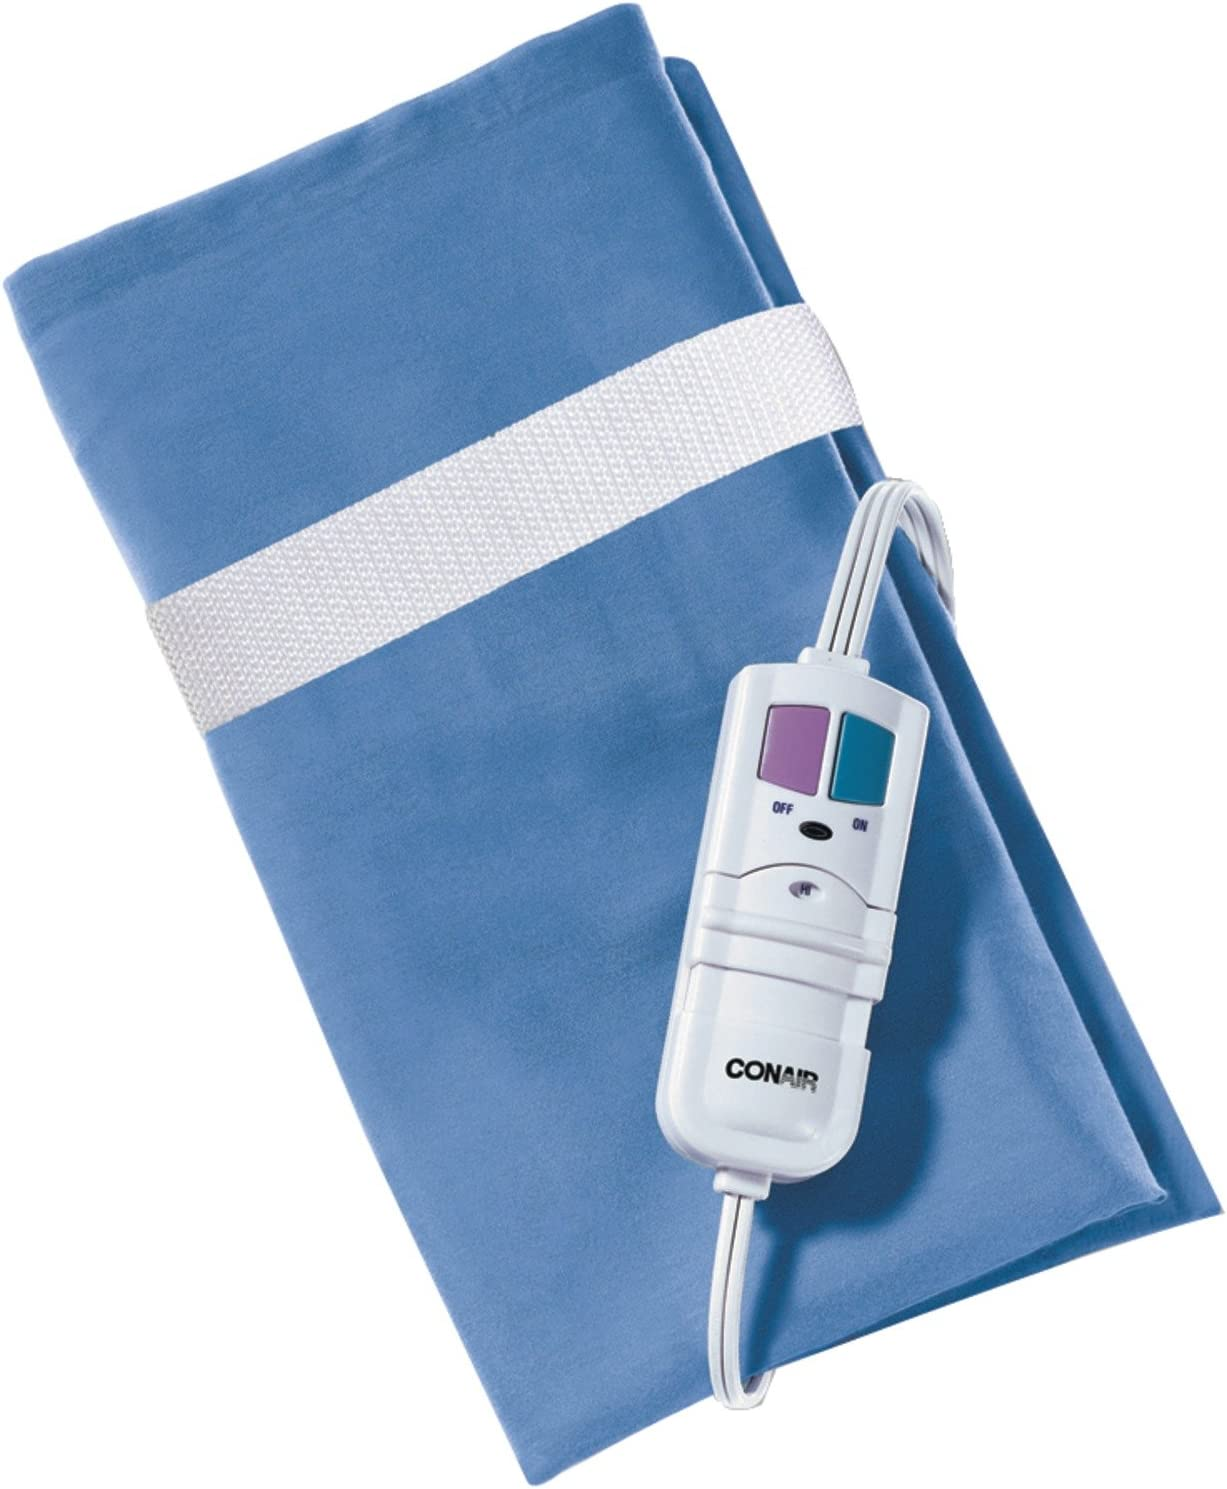 Conair Moist King-Size Heating Pad with Automatic Off